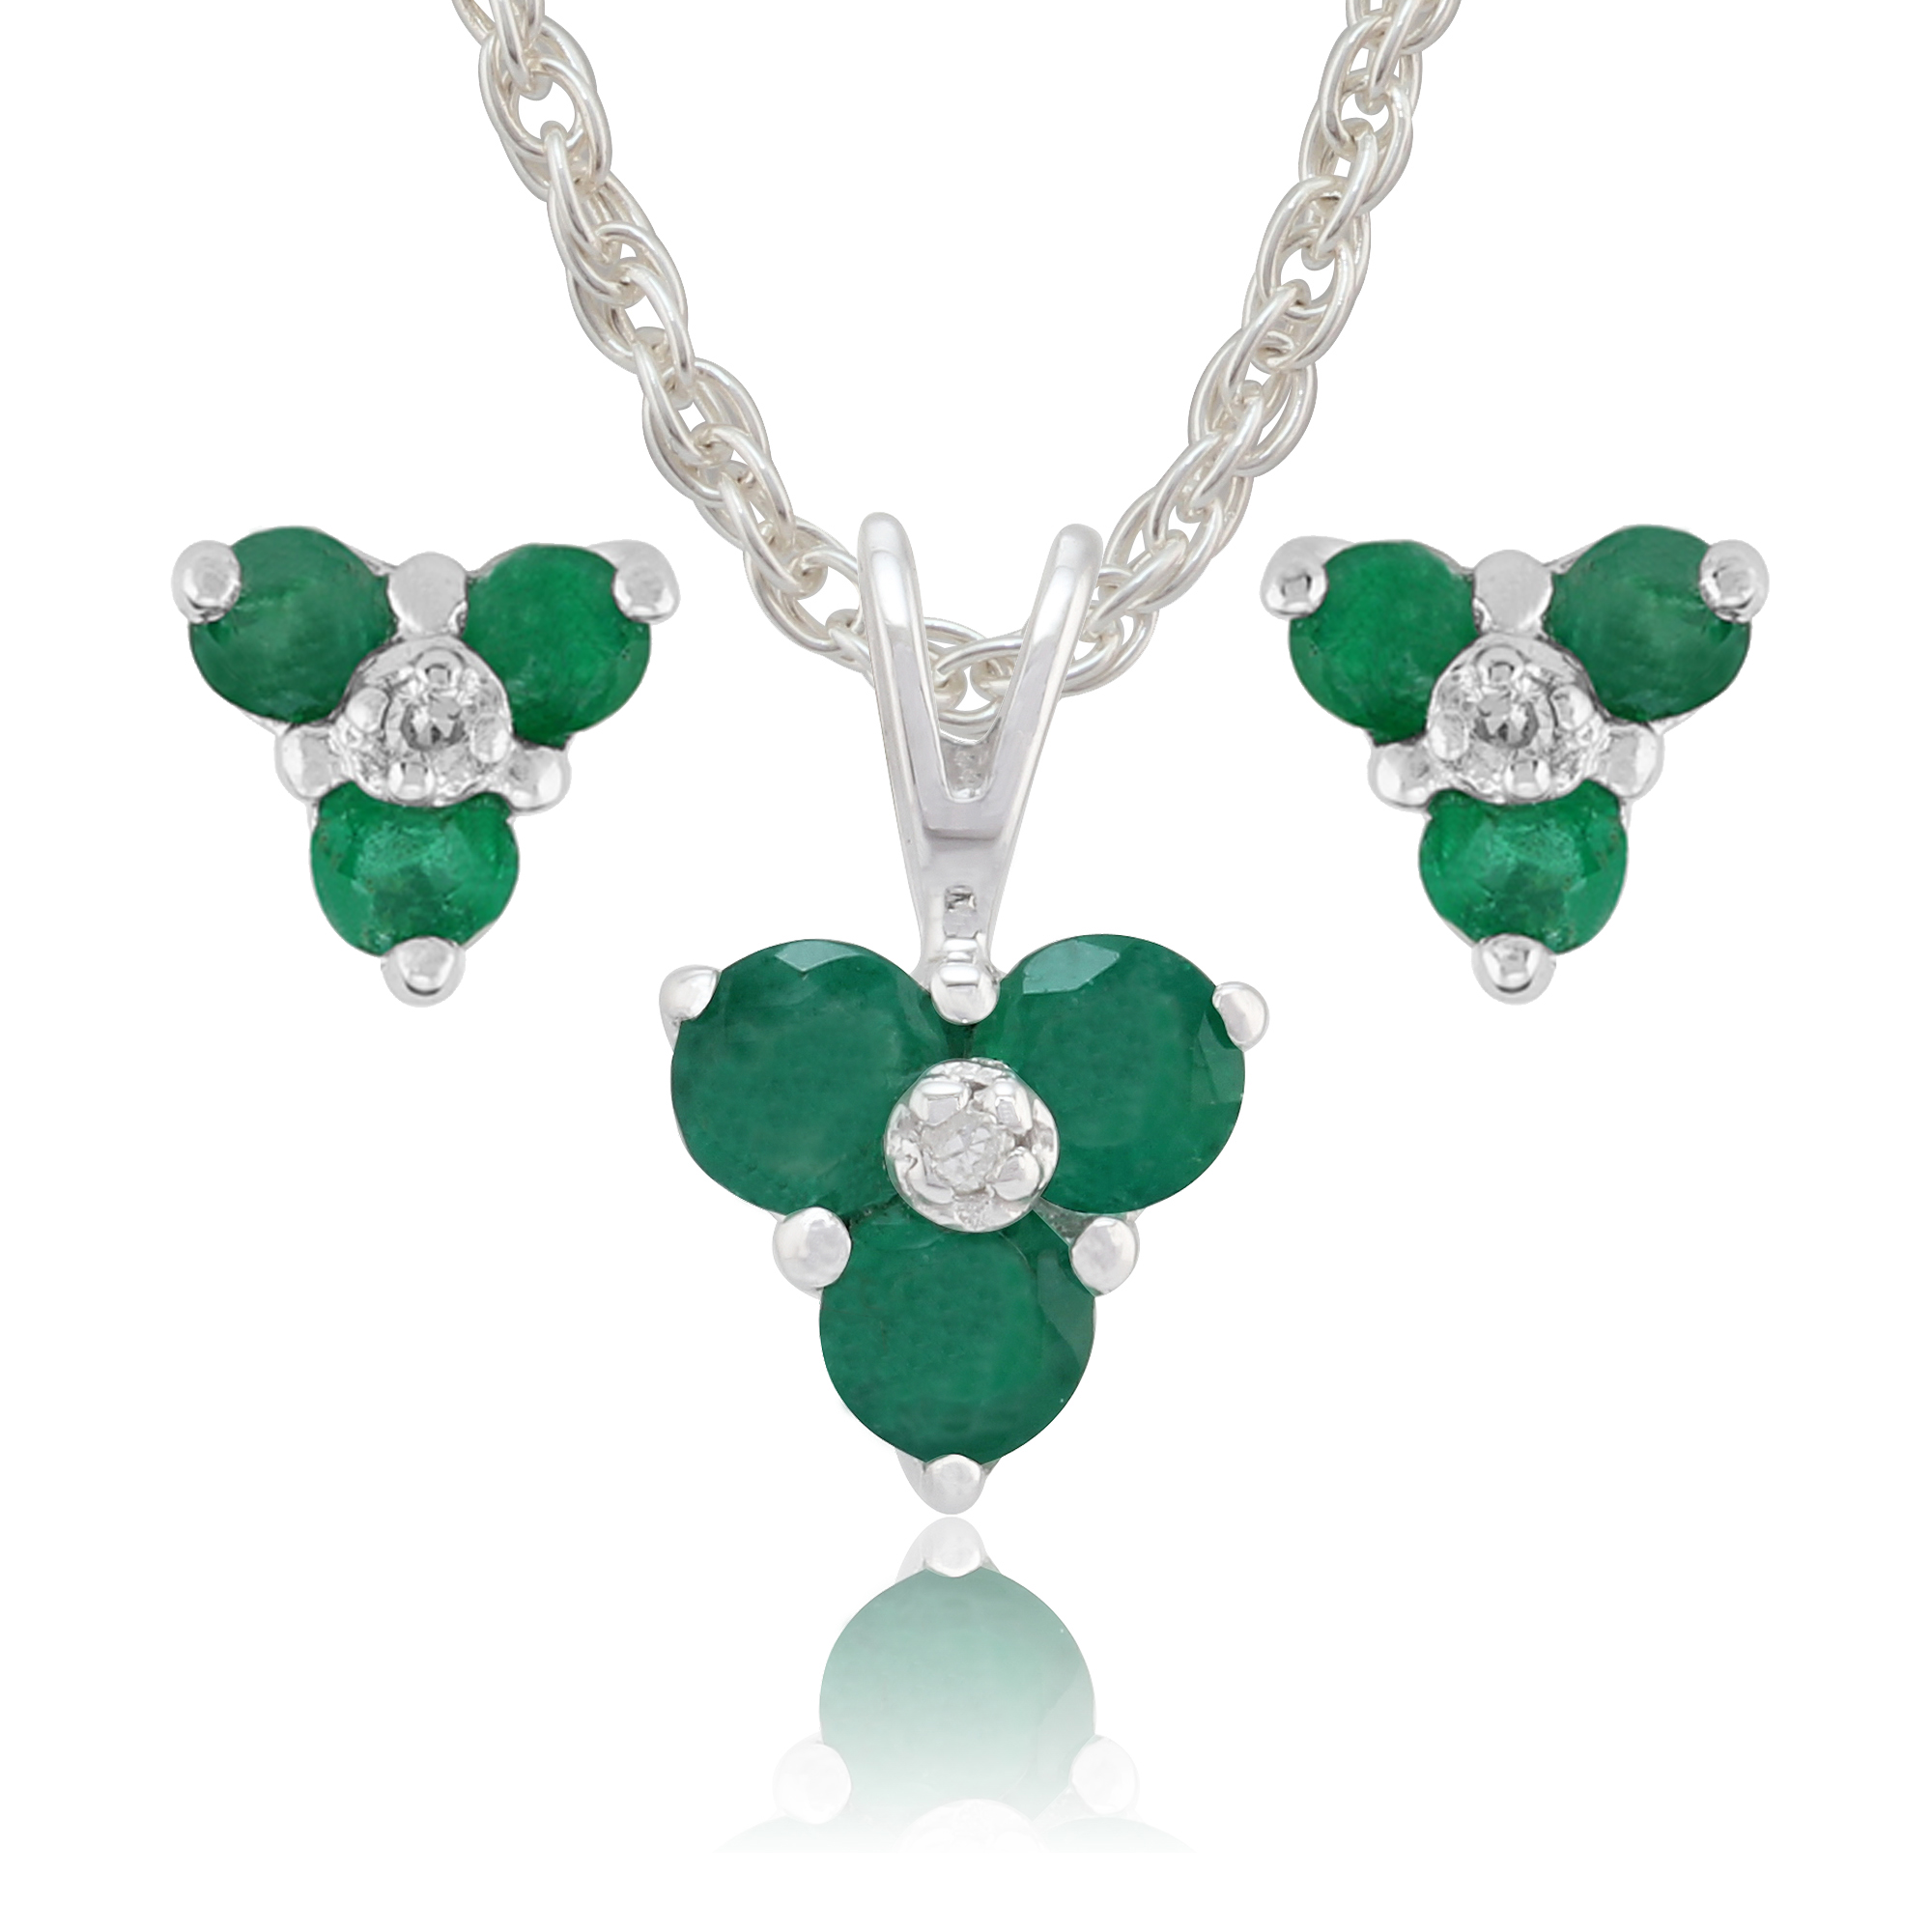 Gemondo 9ct White Gold Emerald & Diamond Cluster Stud Earring & Necklace Set